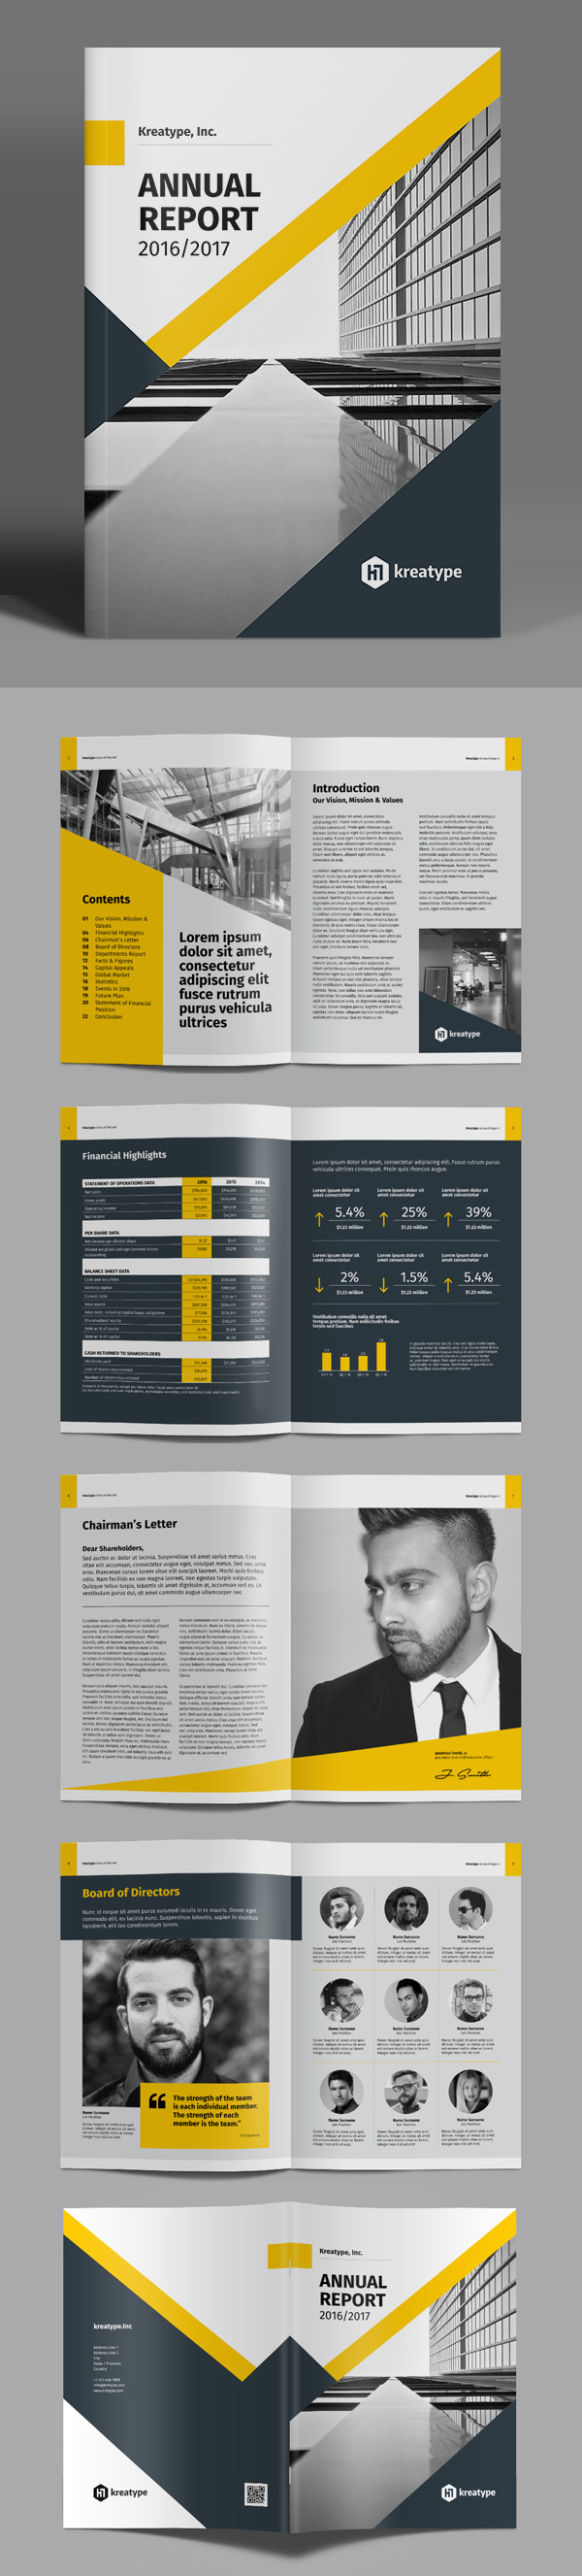 100 Professional Corporate Brochure Templates - 15